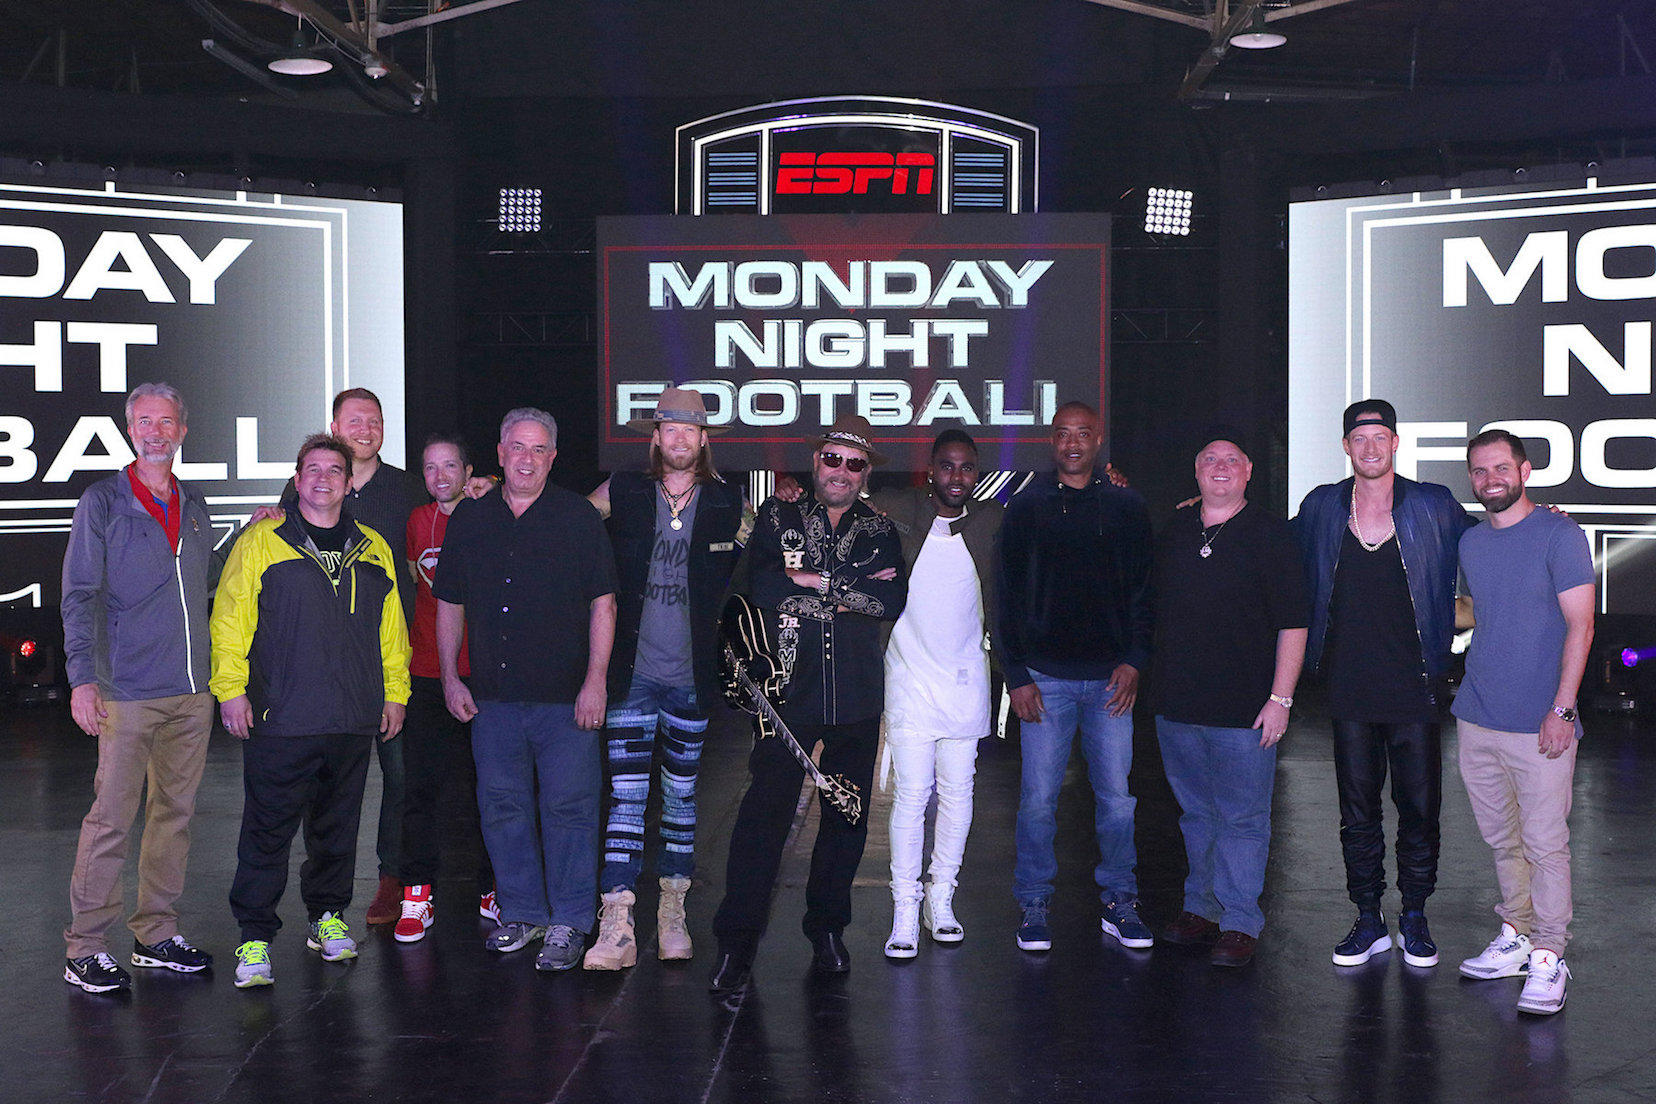 Pictured, from left: Robert Toms (ESPN), Michael `Spike` Szykowny (Habana Avenue), Lucas Nickerson (Habana Avenue), Steven J. Levy (Habana Avenue), Ken Levitan (Vector Management), Brian Kelley (Florida Georgia Line), Hank Williams Jr., Jason Derulo, Frank Harris (23 Management), Kirt Webster (Webster Public Relations), Tyler Hubbard (Florida Georgia Line) and Seth England (Big Loud Mountain). (Photo by Jeremy Westby, Webster PR)